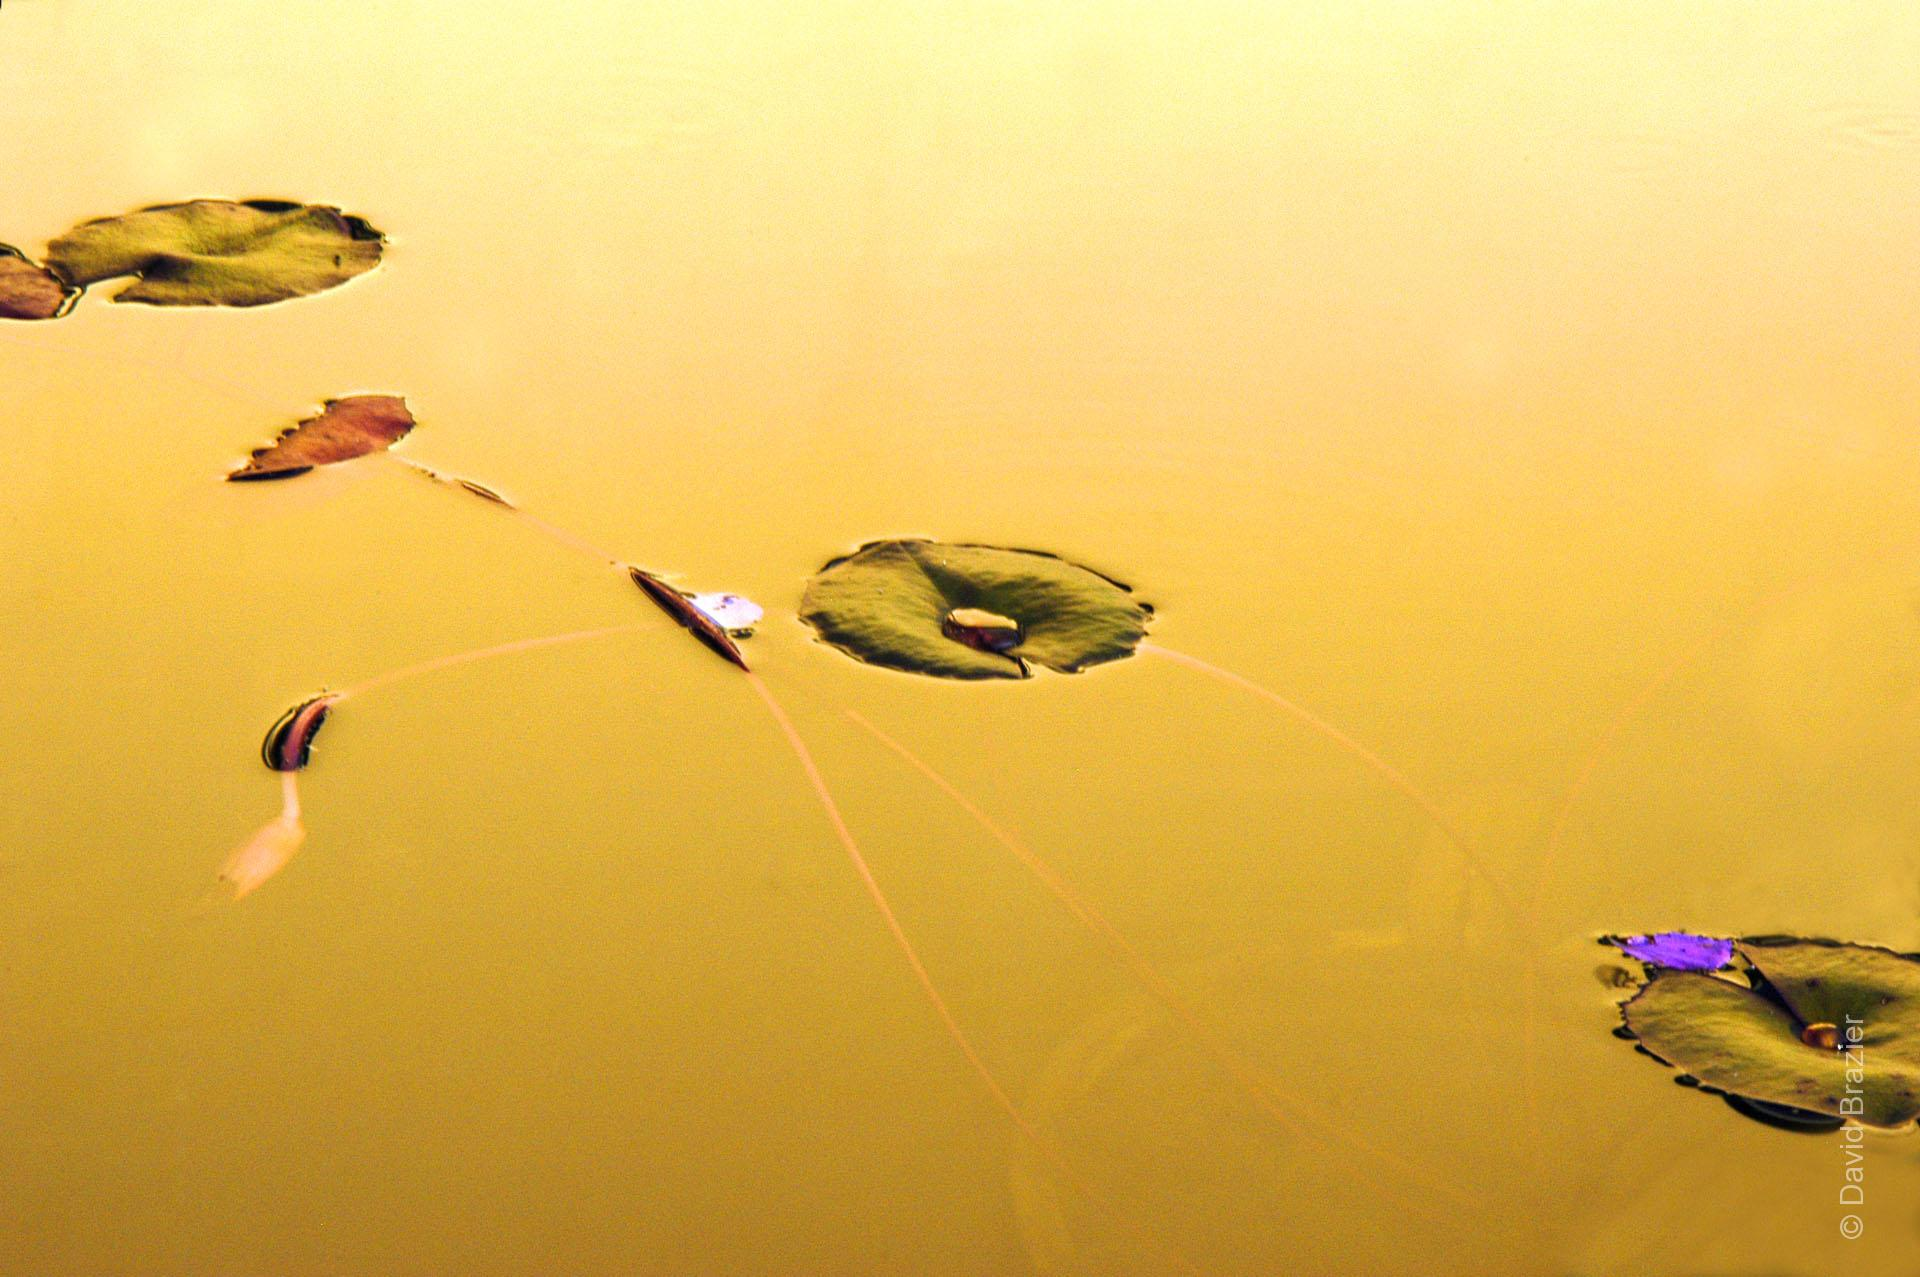 Water lilies in a pond at dusk, golden light